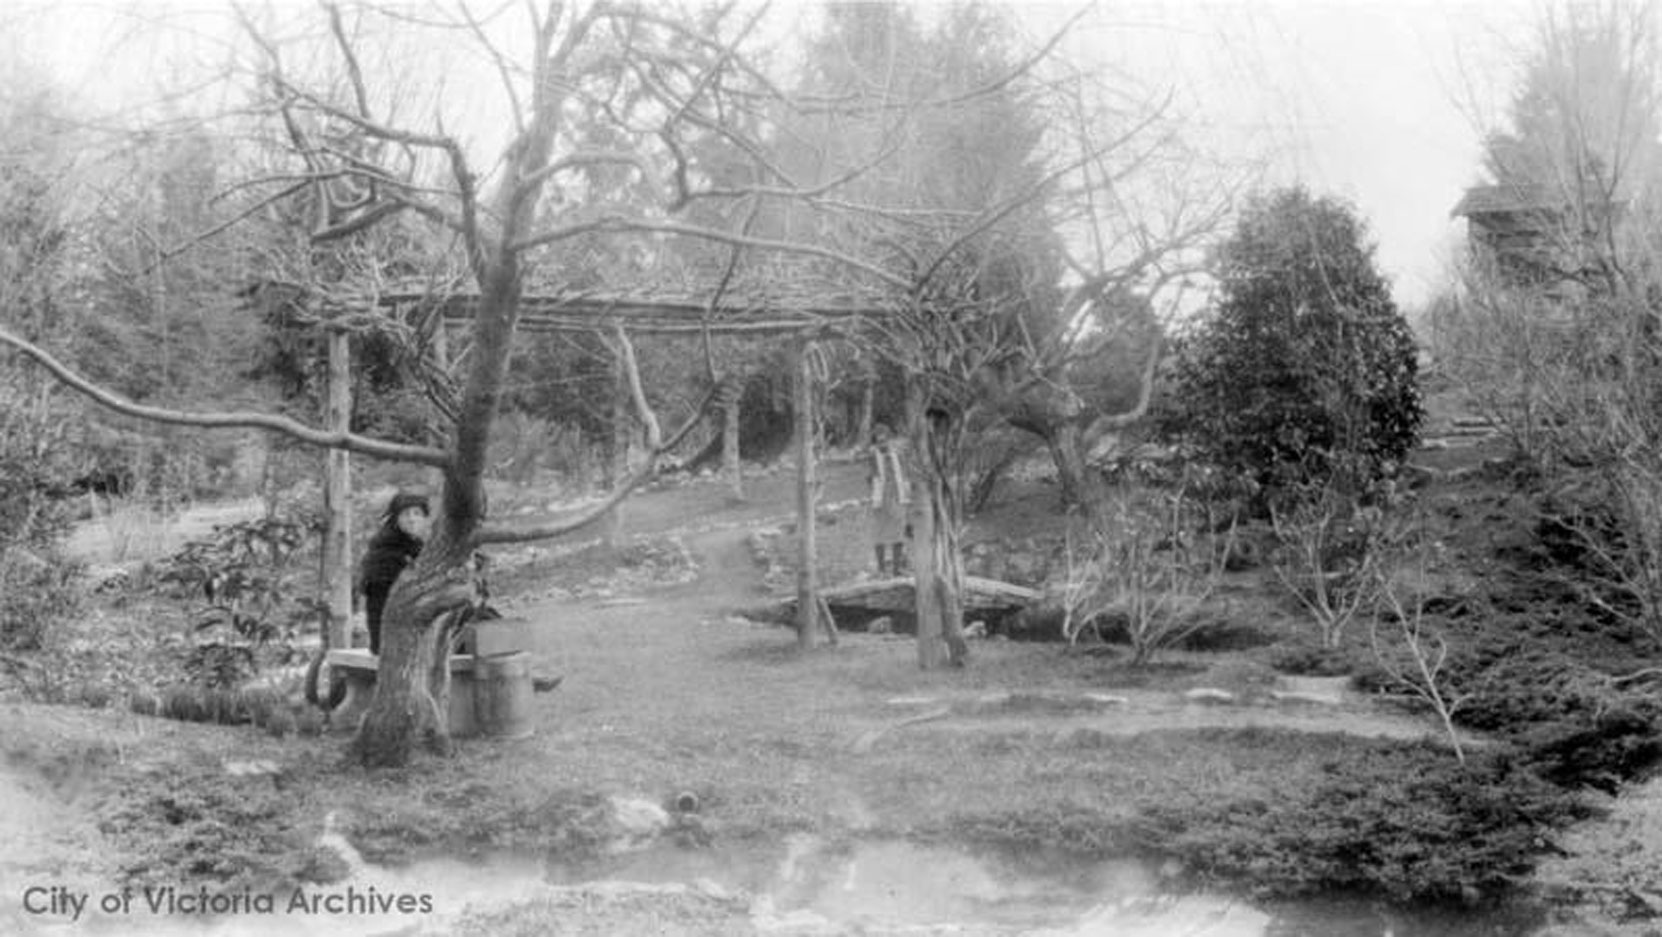 The Japanese Gardens in the early stages of its development, circa 1910, likely during its installation by Isaburo Kishida. (City of Victoria Archives M05822)